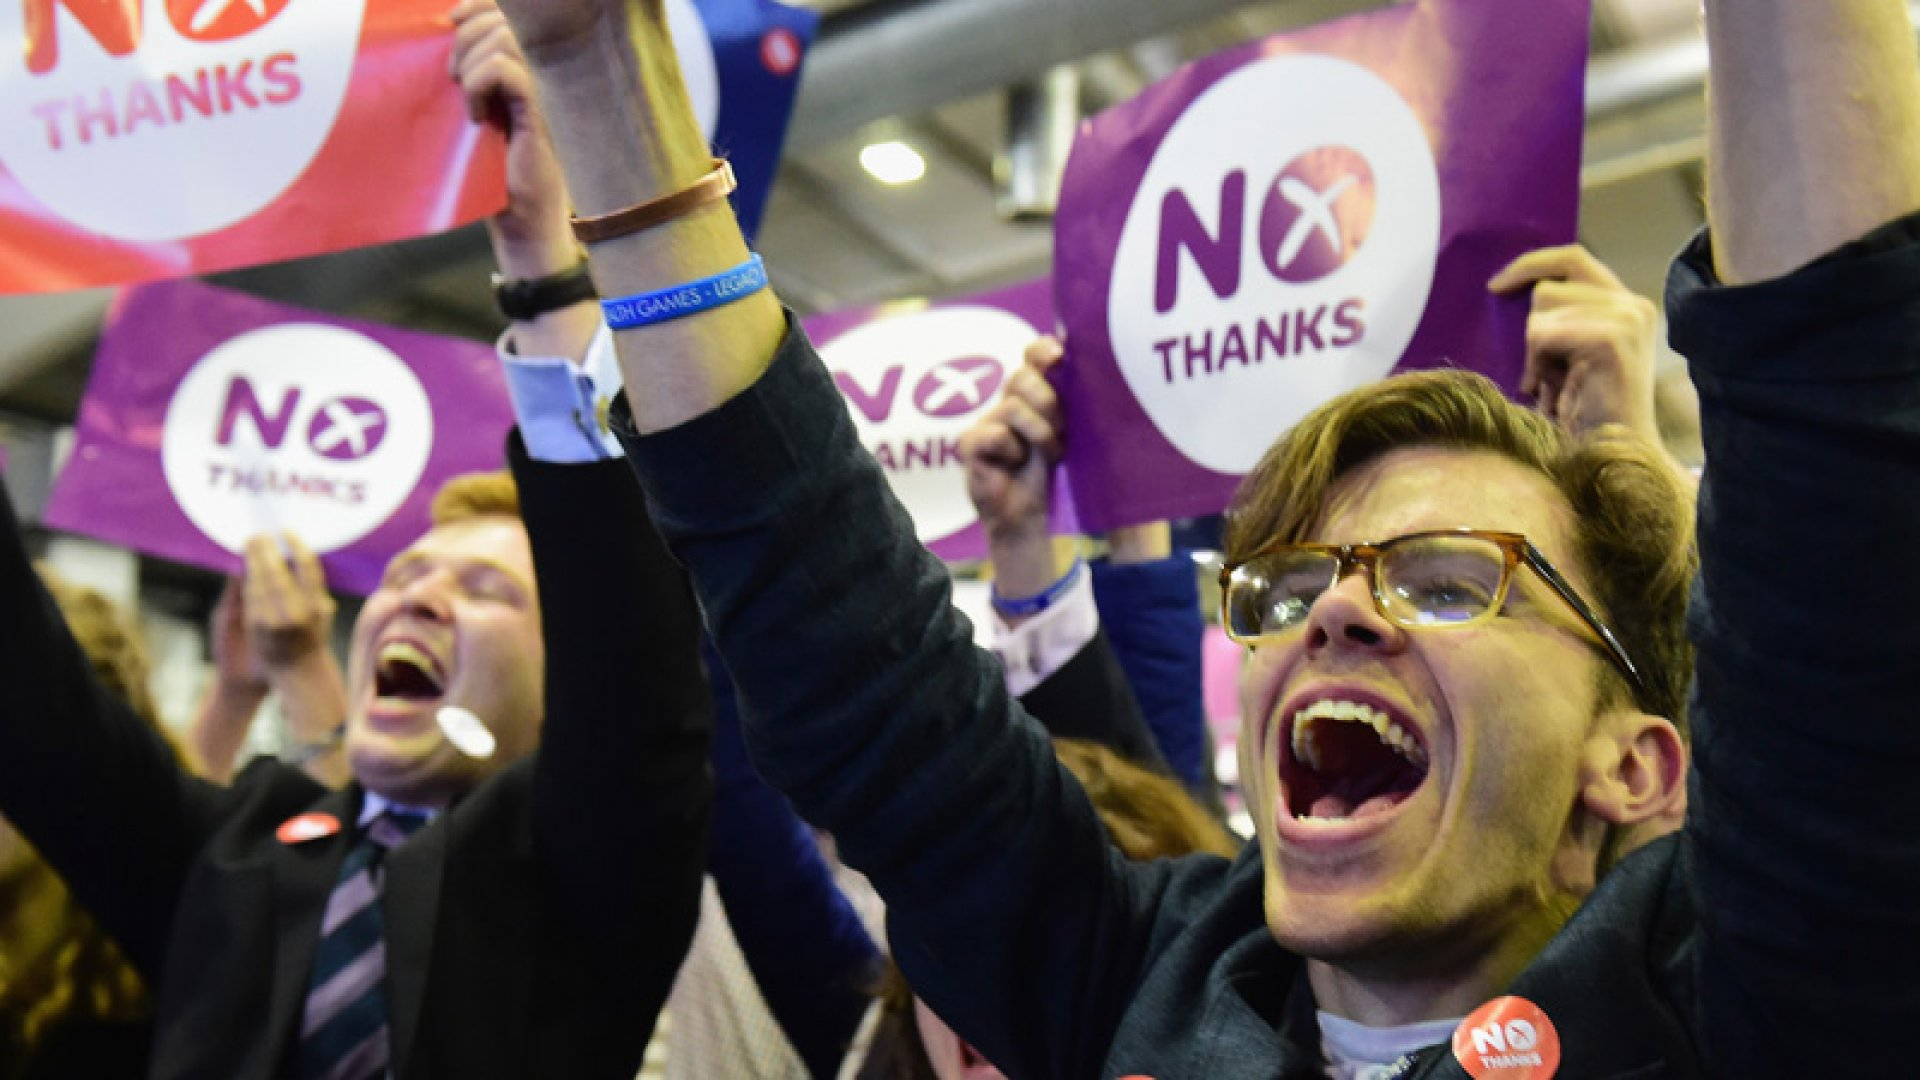 Scottish Vote No, but Changes Still Coming for UK